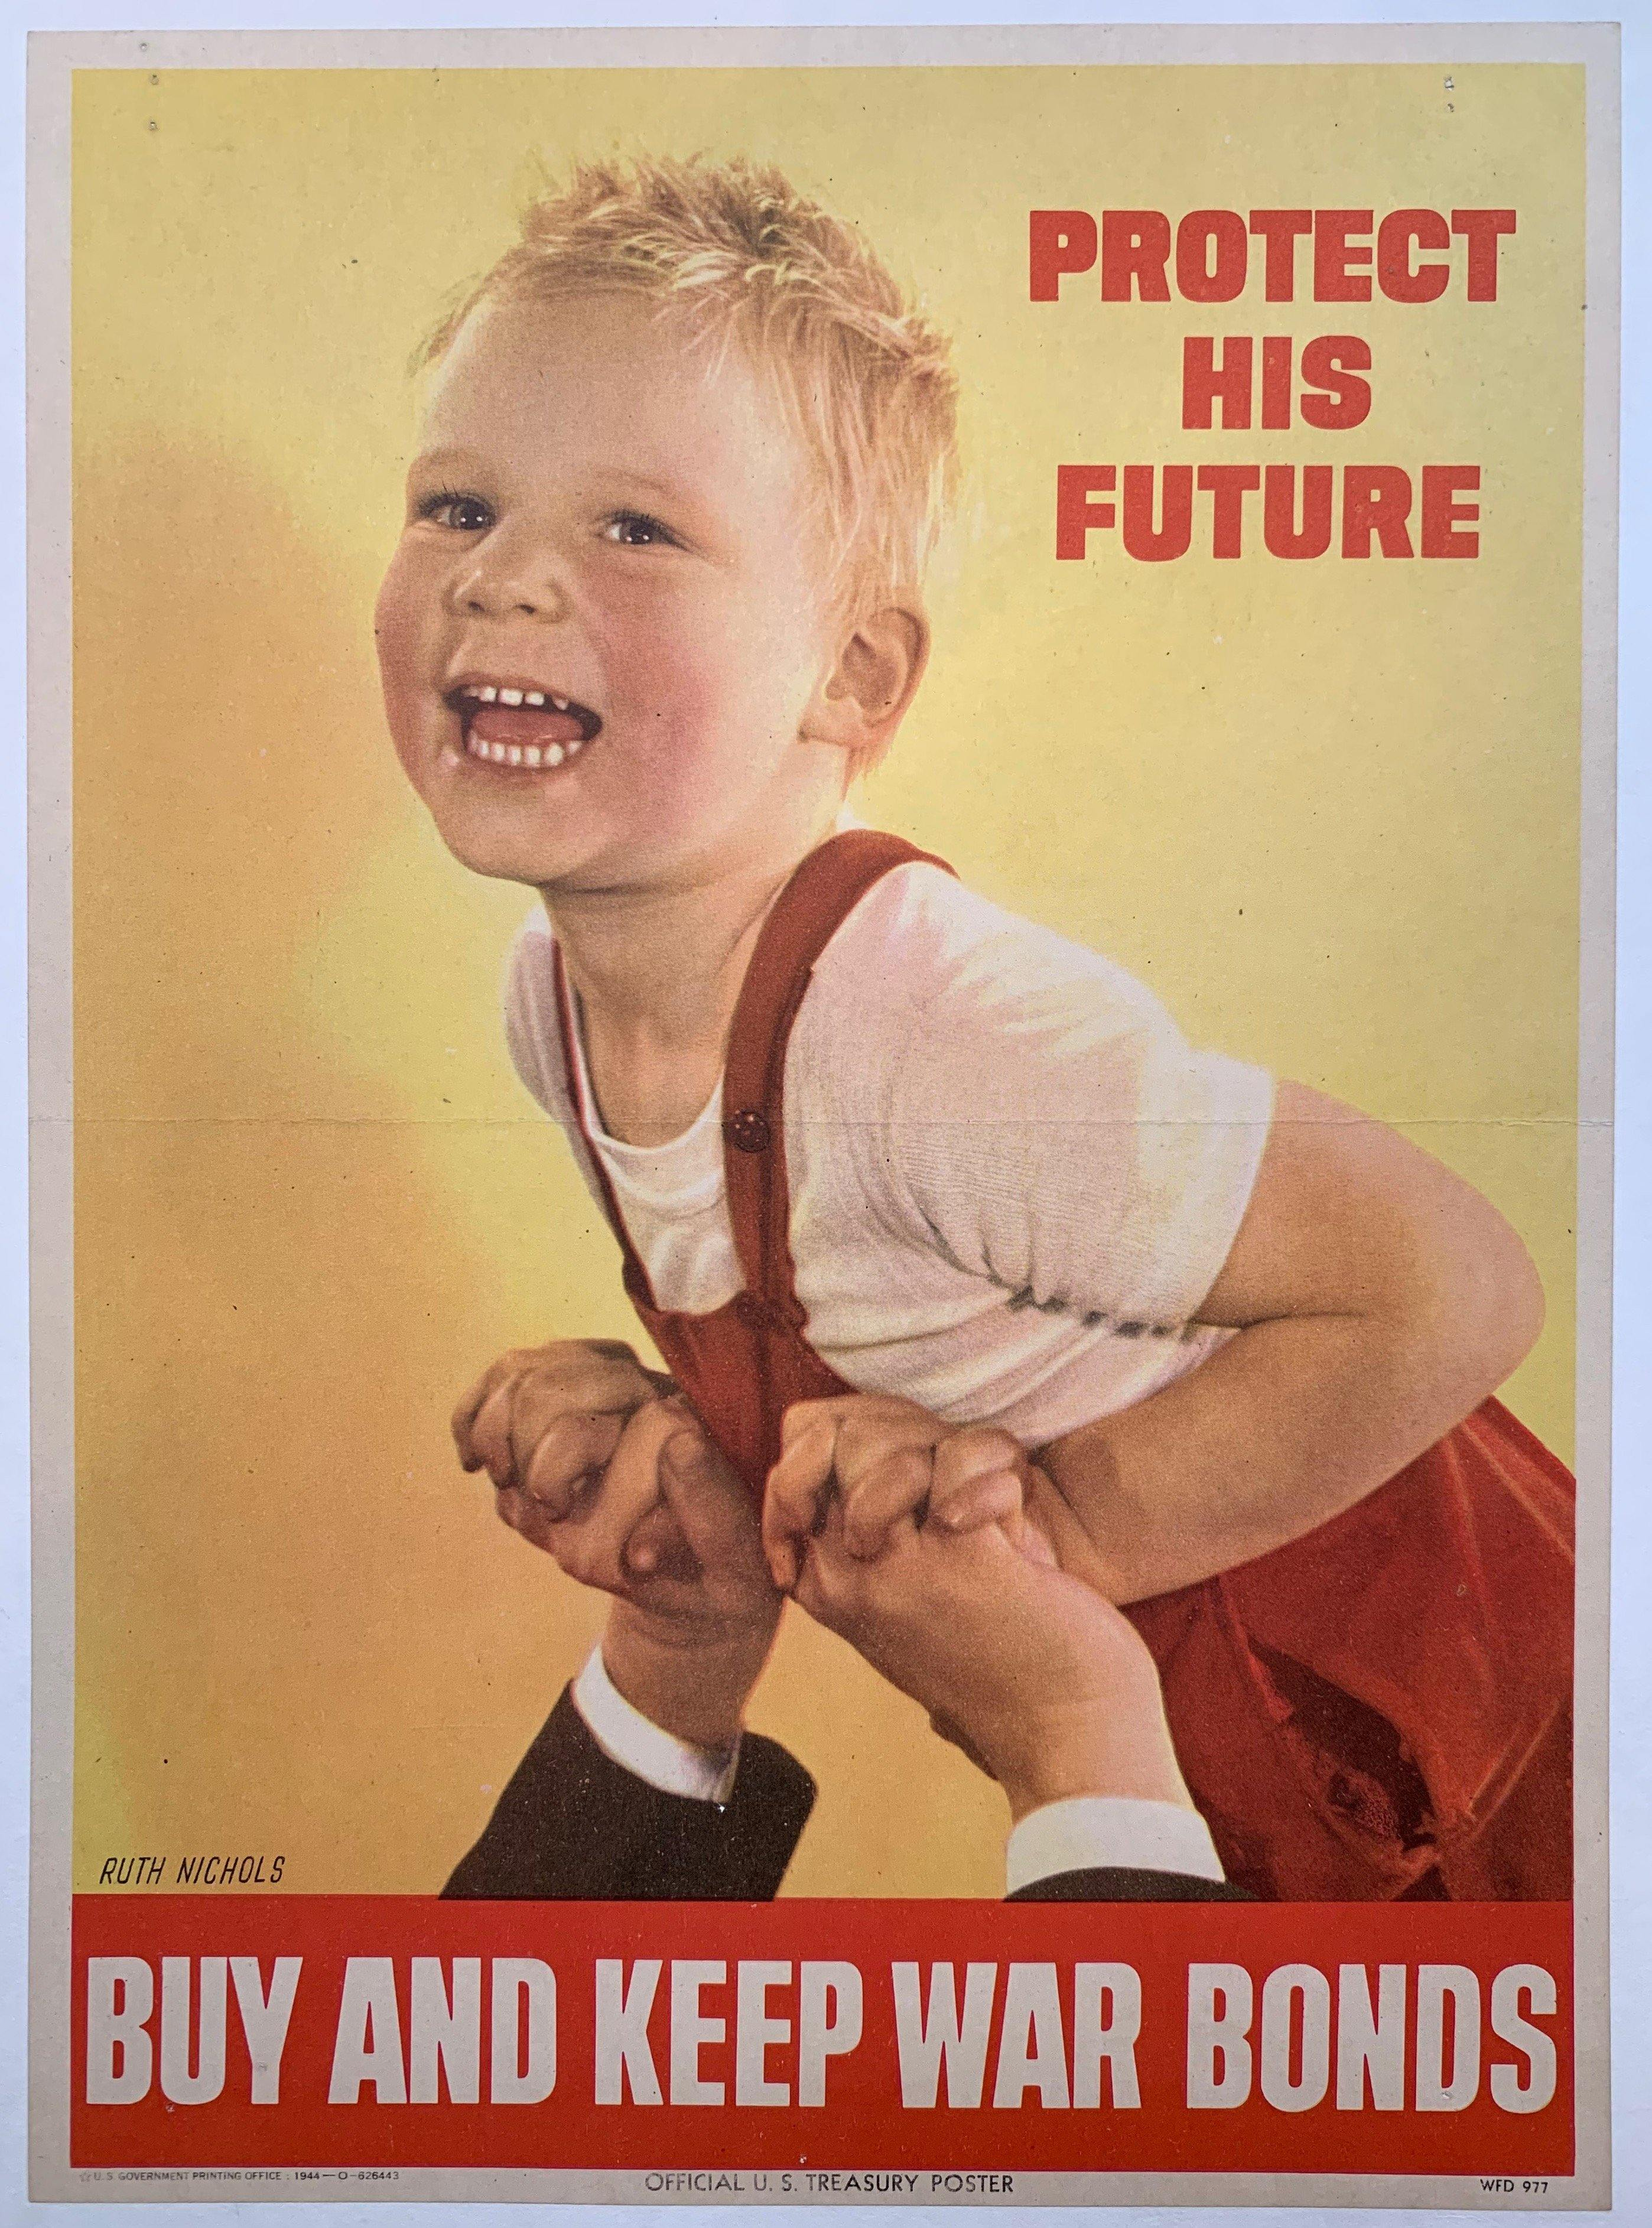 Protect his Future. Buy and Keep War Bonds.